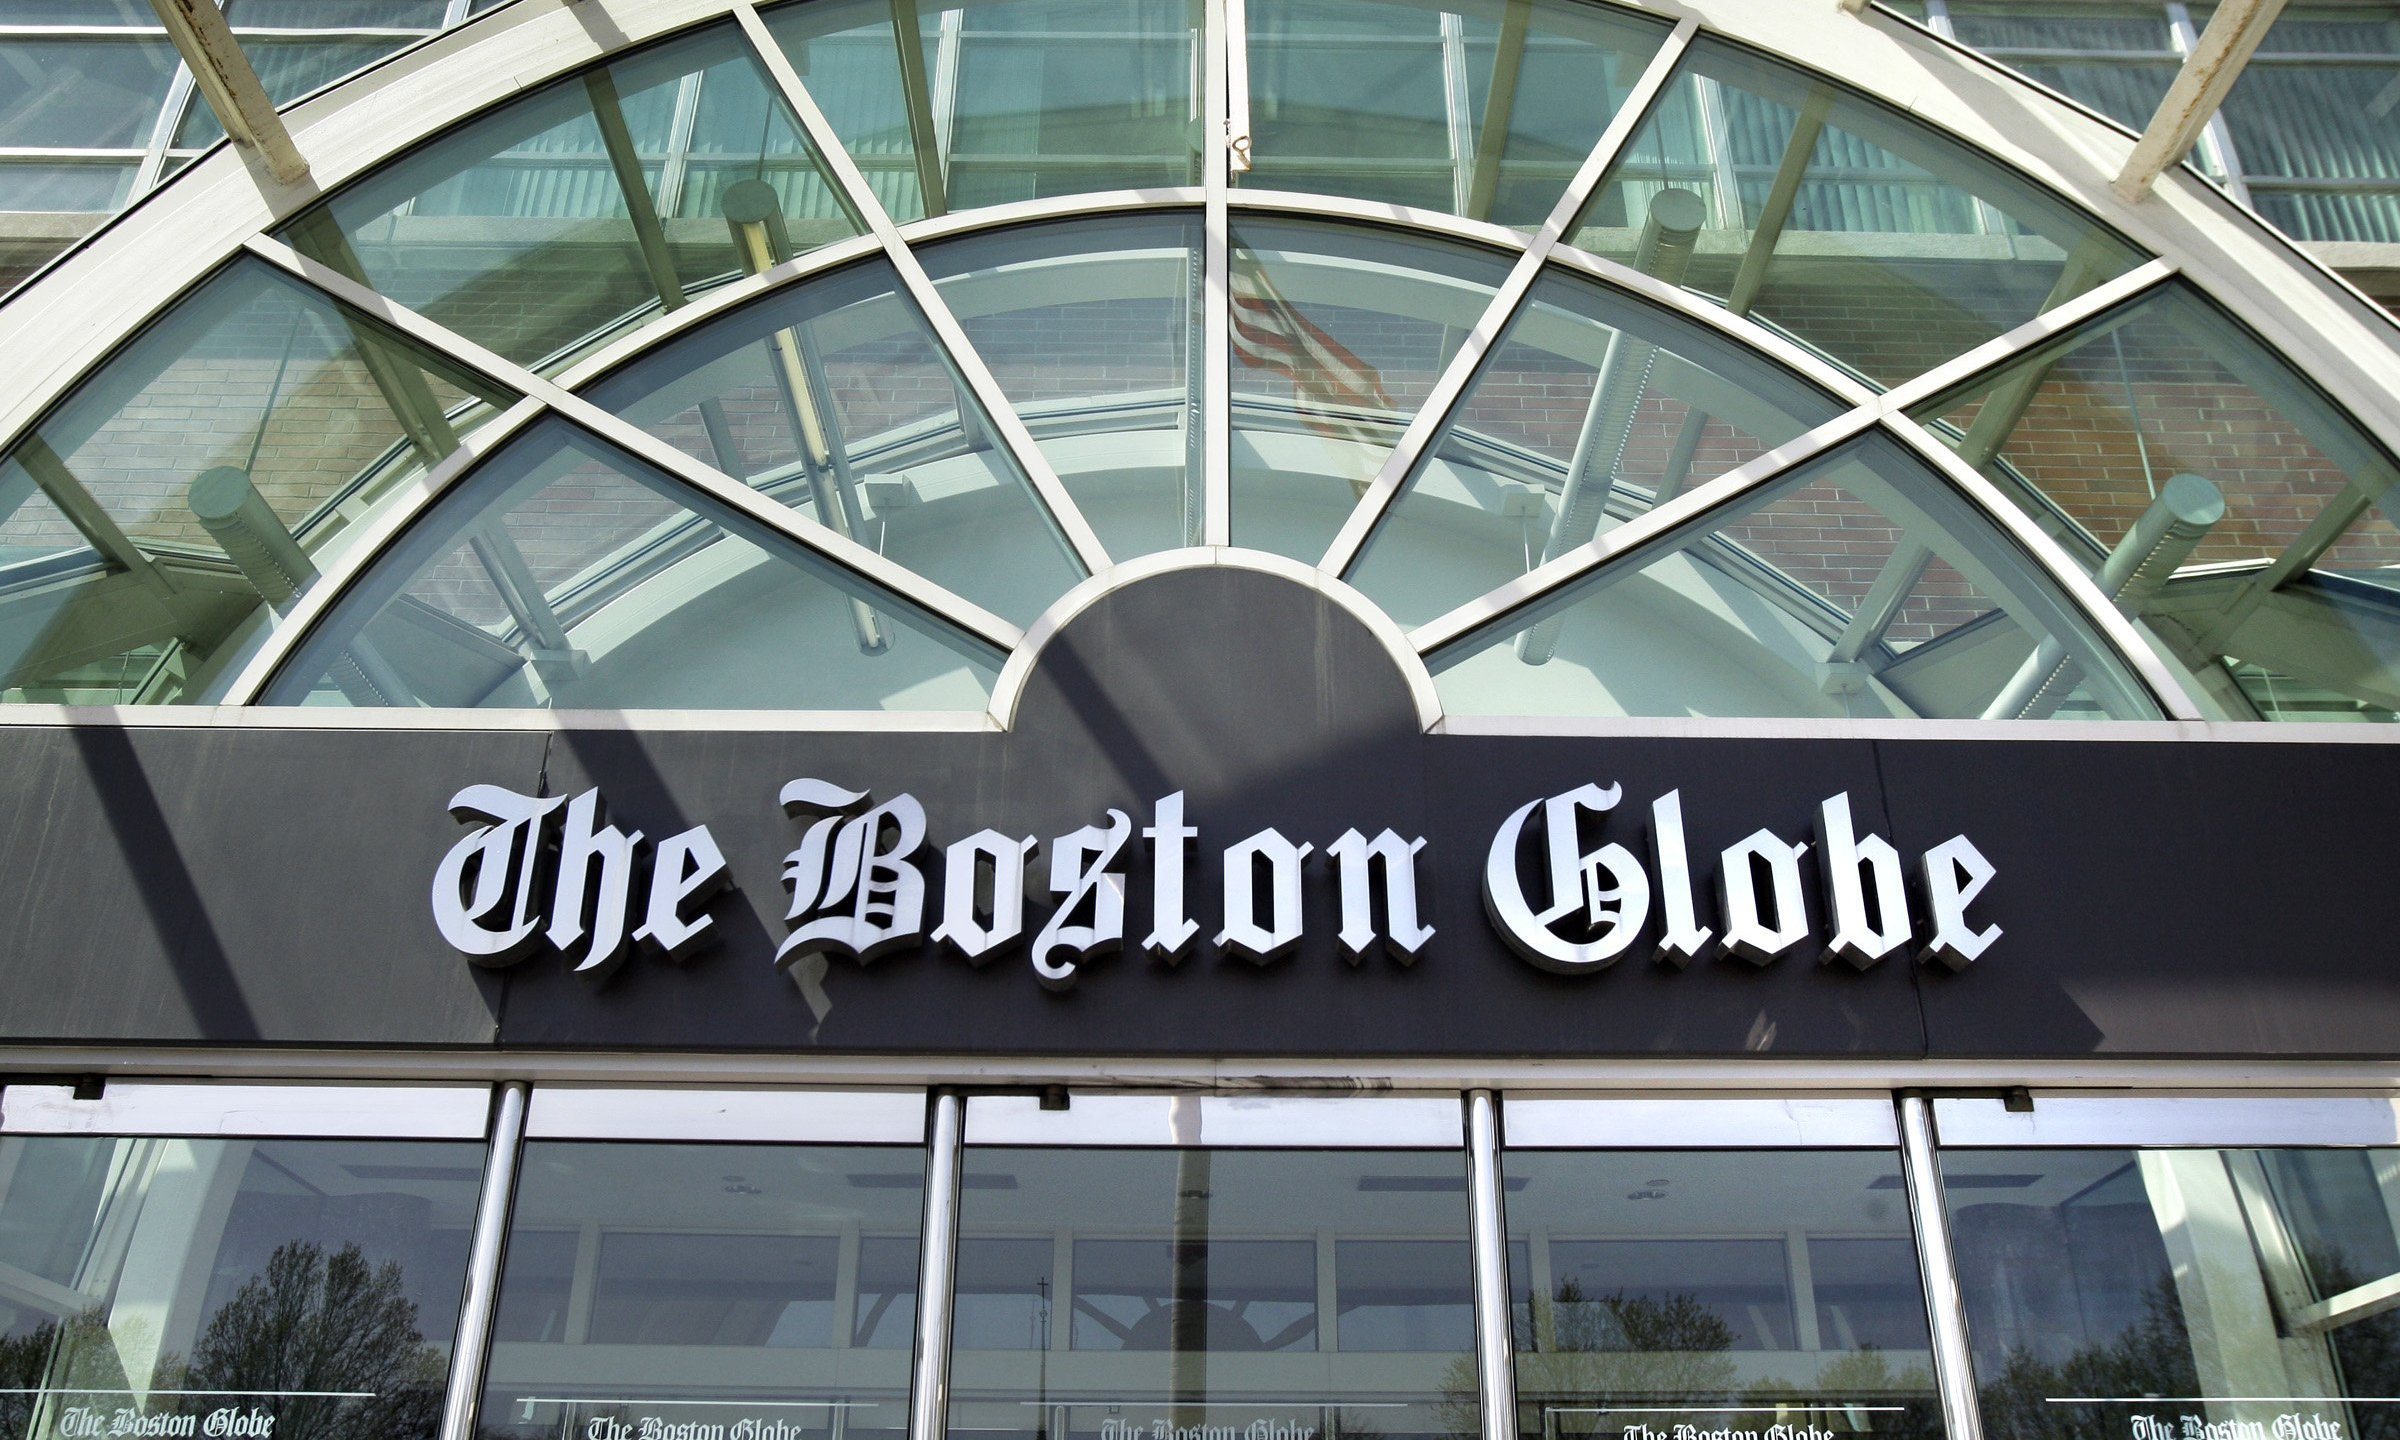 """The Boston Globe has been contacting newspaper editorial boards and proposing a """"coordinated response"""" to President Trump's escalating """"enemy of the people"""" rhetoric. (Credit: AP via CNN)"""